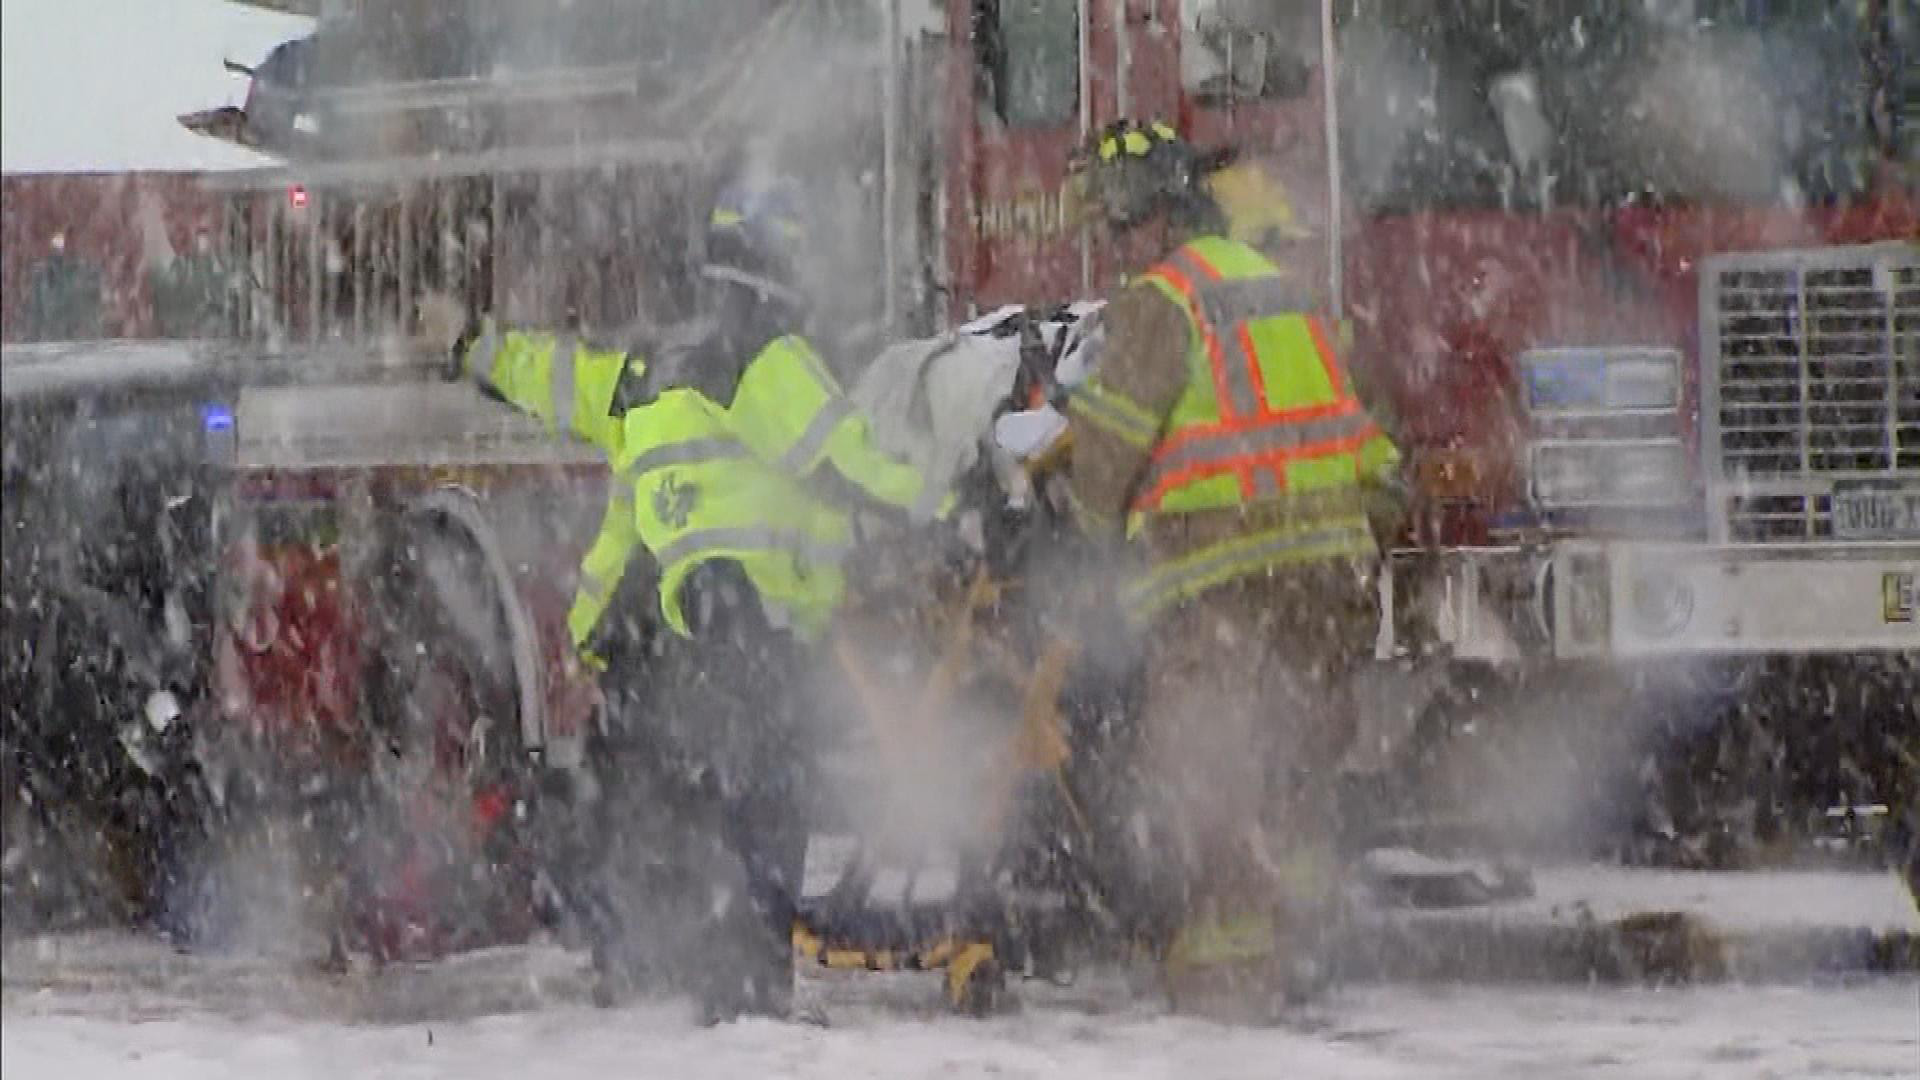 A person being taken to the hospital after the crash (credit: CBS)